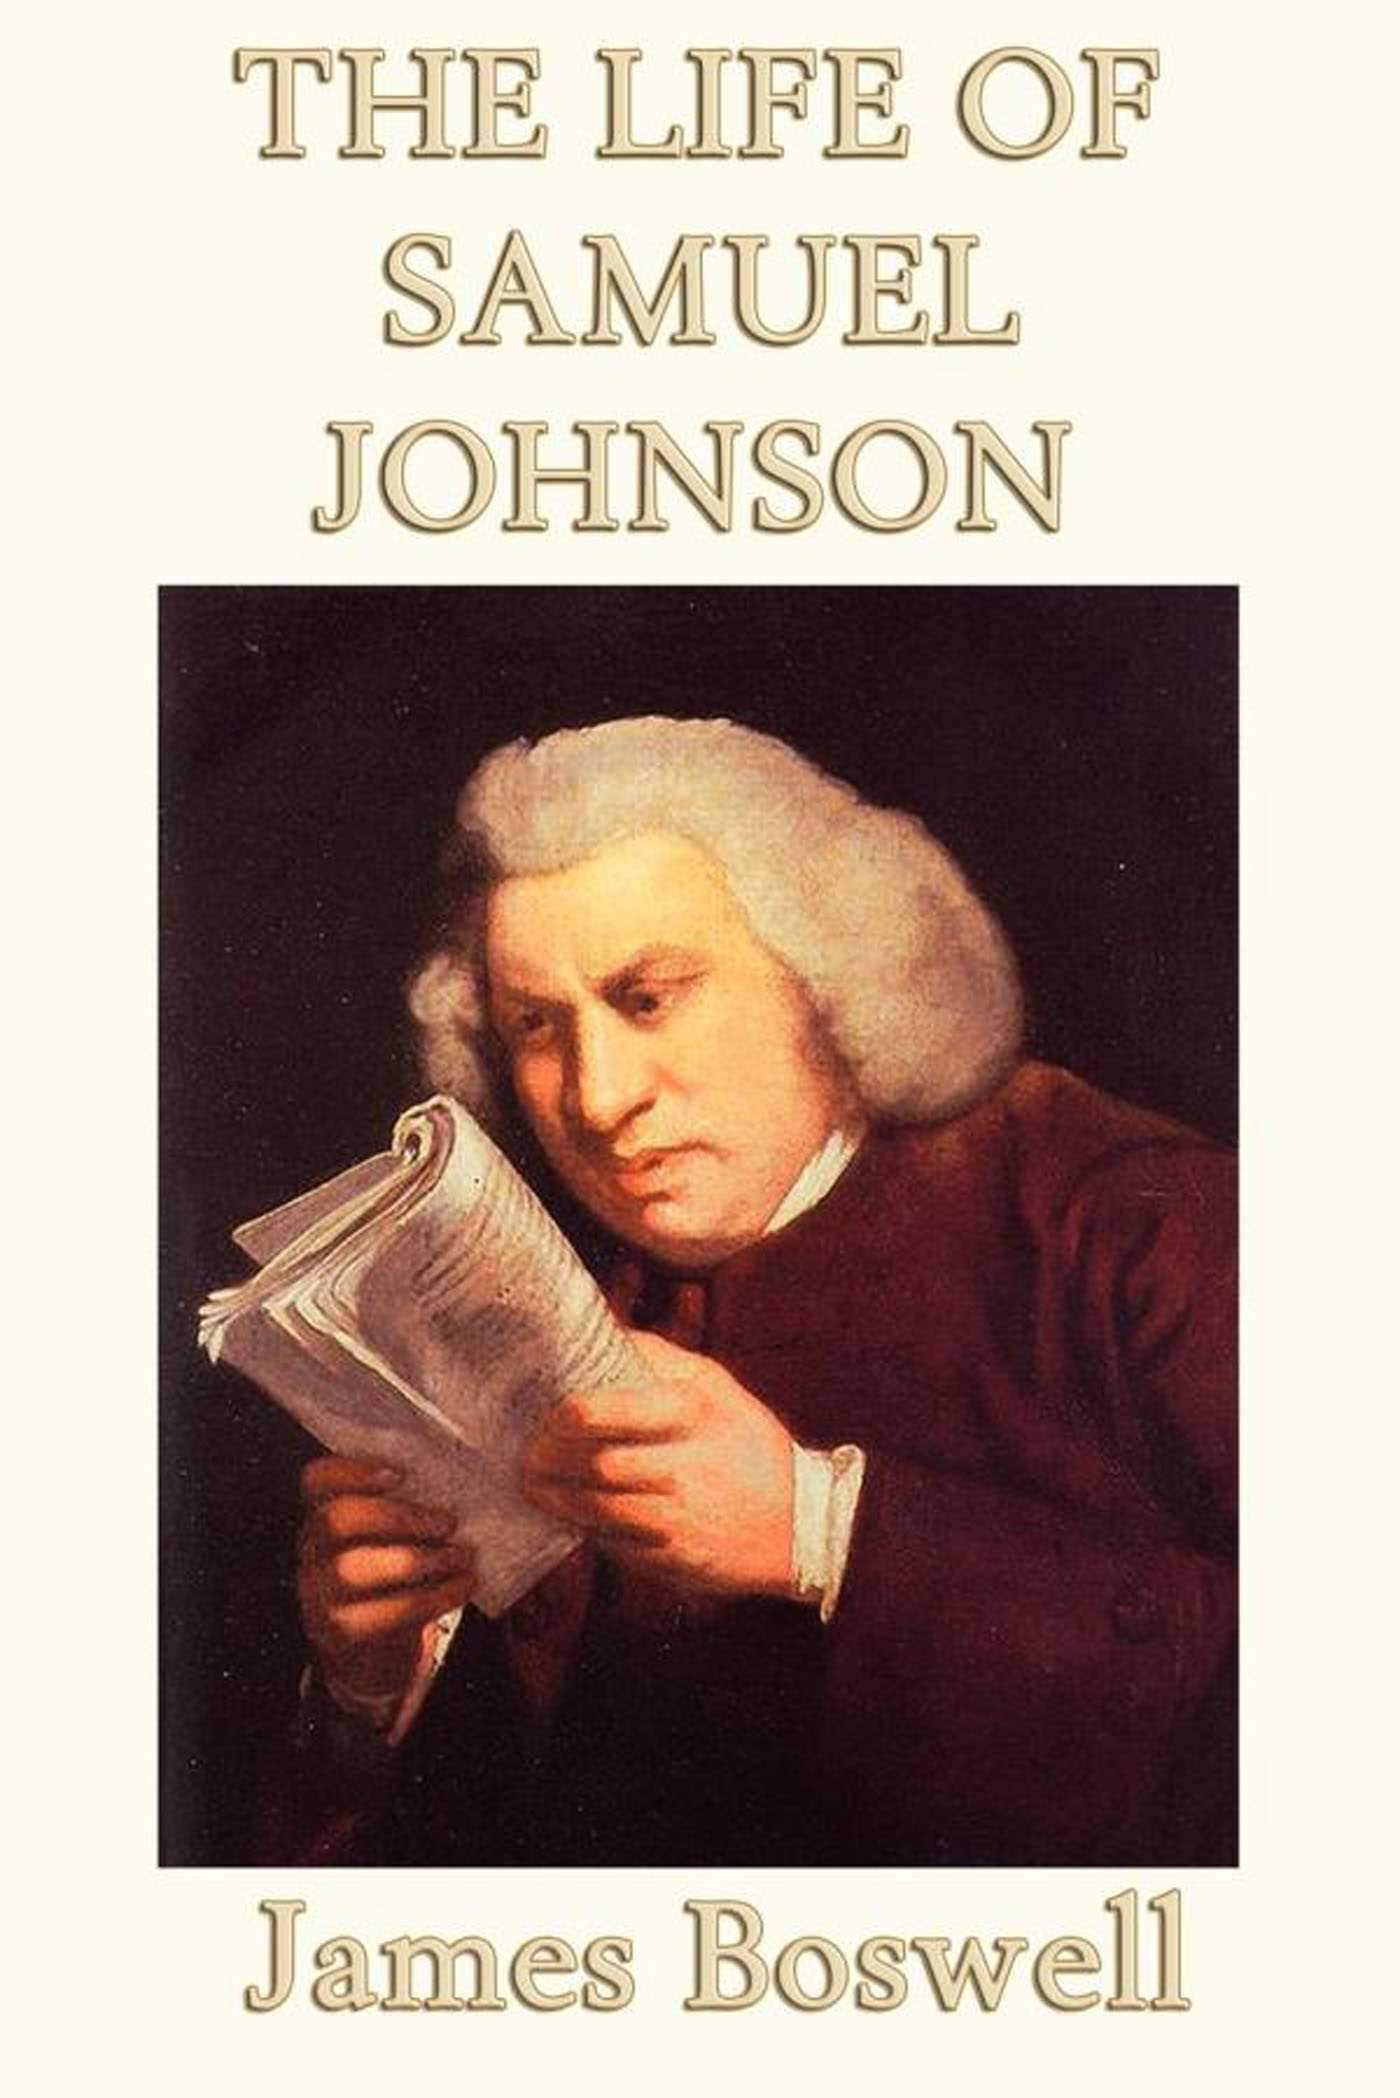 """the decay of friendship by samuel johnson essays """"the decay of friendship"""" by samuel johnson is a thought-provoking examination of the concept of friendship friendship is a cherished ideal to many people, but people often take it for granted or have a shallow perspective on this """"sublime enjoyment."""